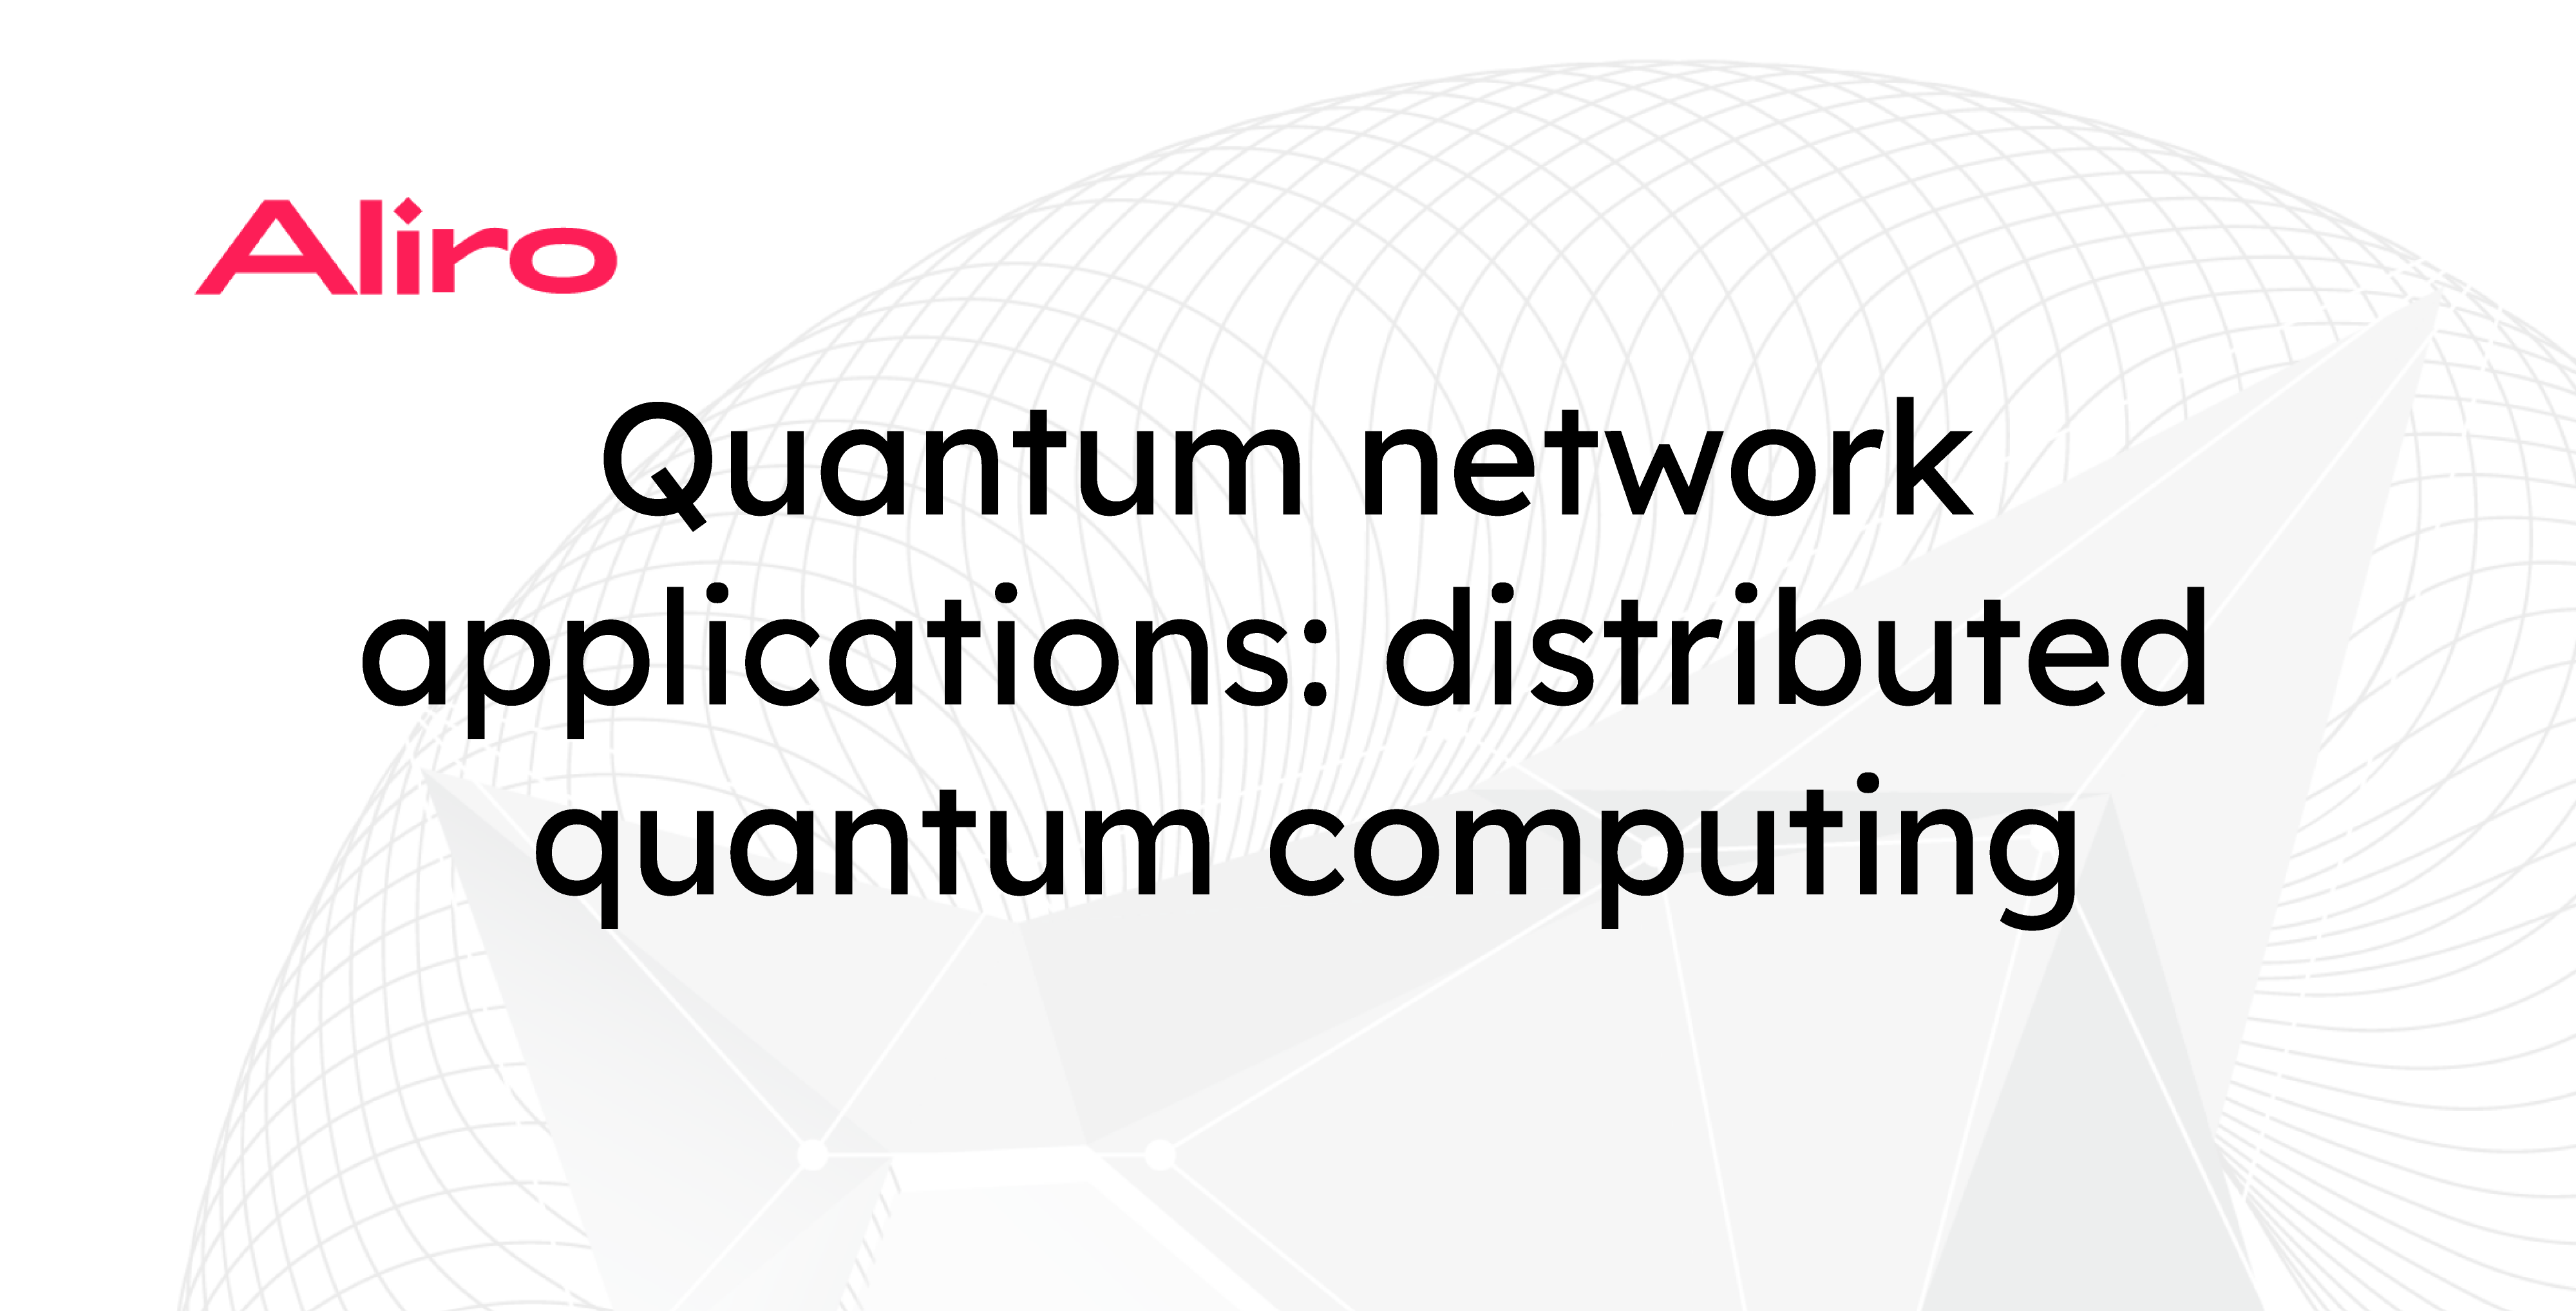 Quantum network applications: distributed quantum computing